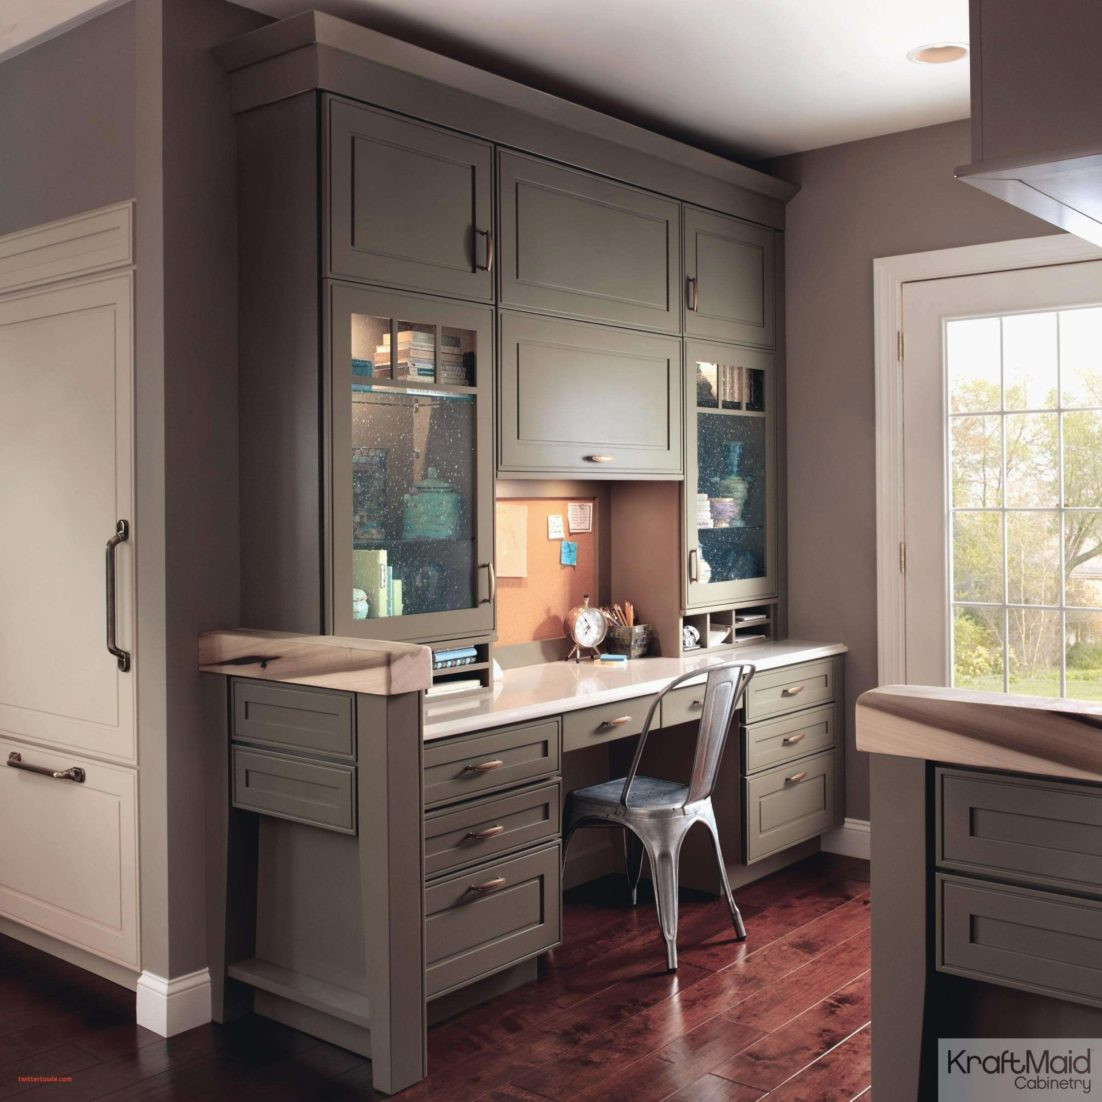 cost of refinishing hardwood floors winnipeg of oak kitchen cabinets pickled maple awesome cabinet 0d scheme wooden with regard to oak kitchen cabinets pickled maple kitchen cabinets awesome kitchen cabinet 0d kitchen scheme wooden kitchen decor